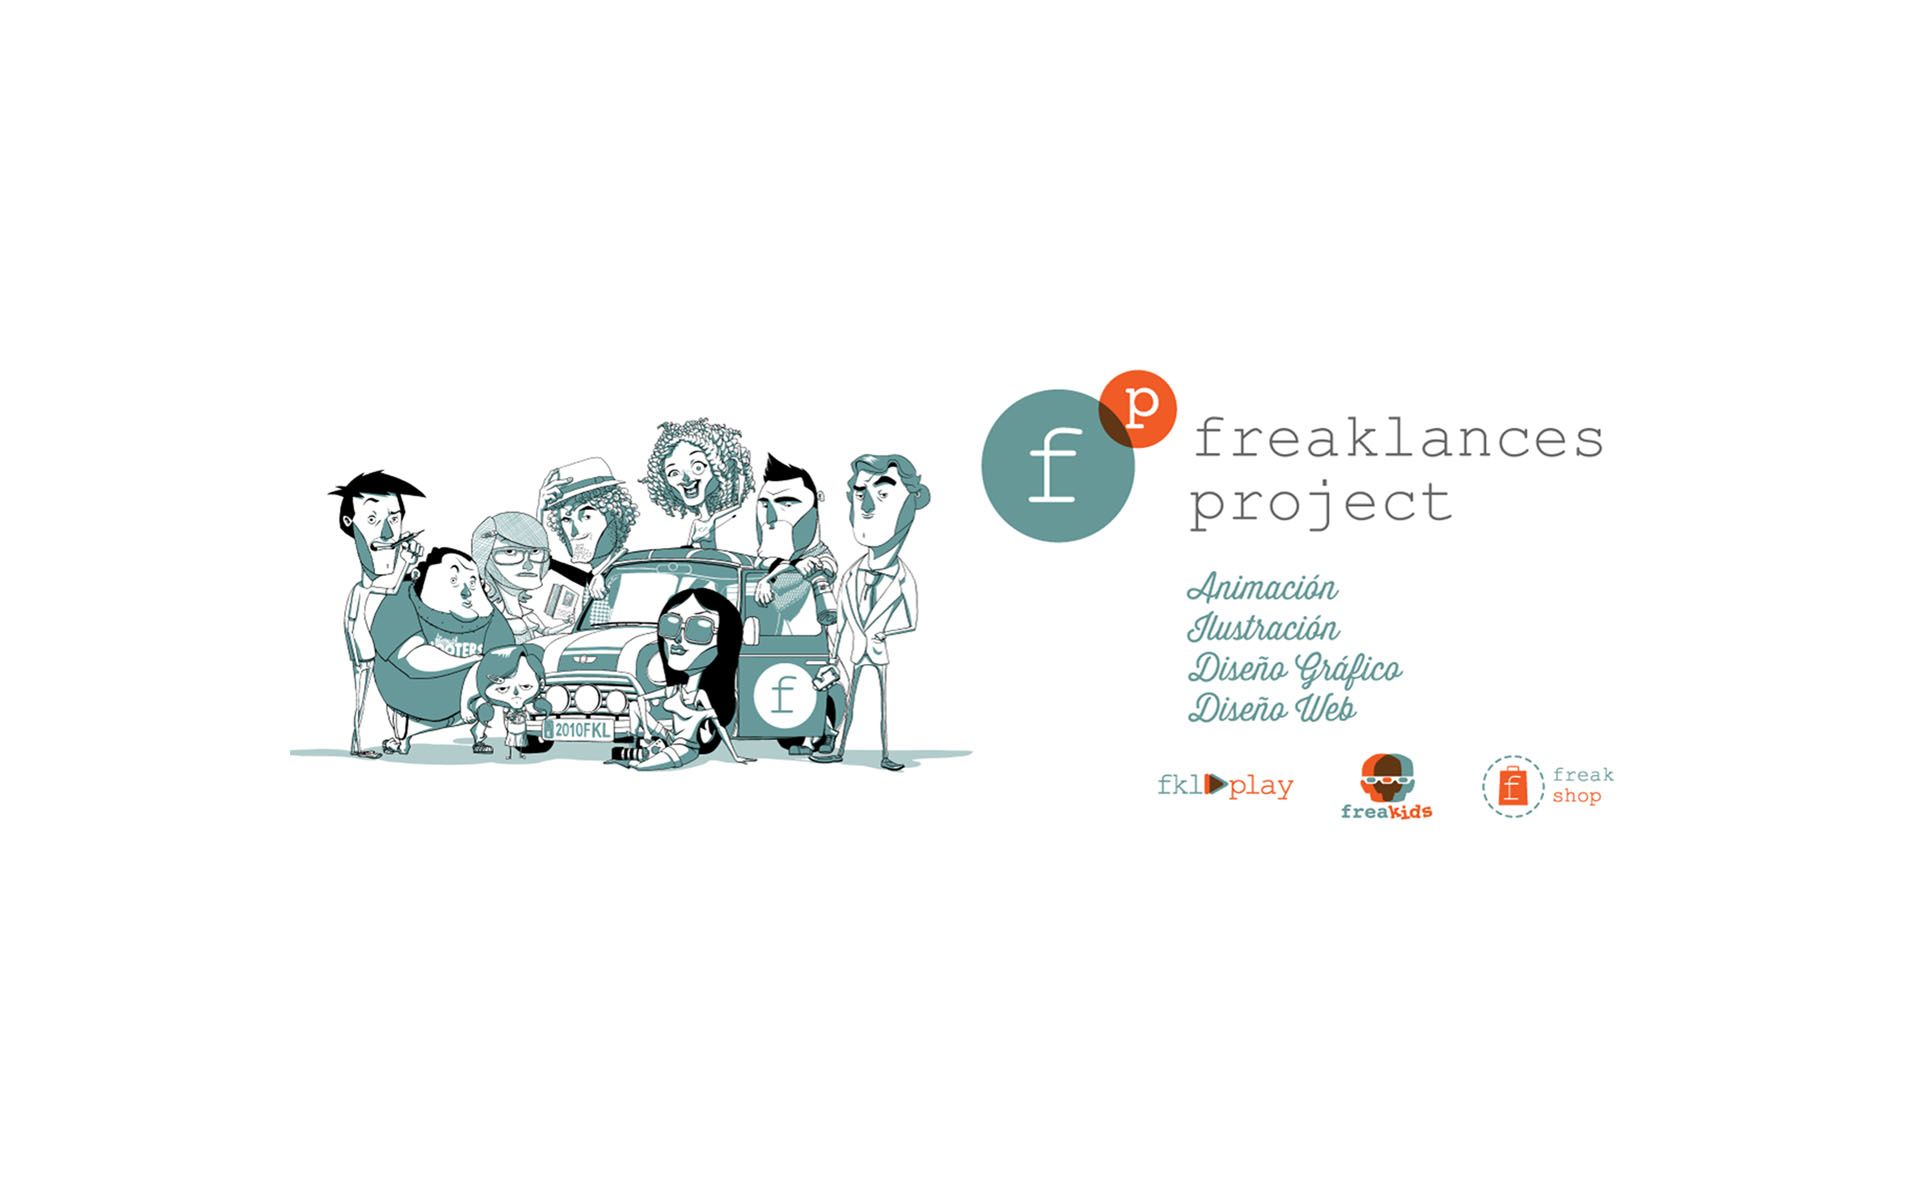 freaklances project